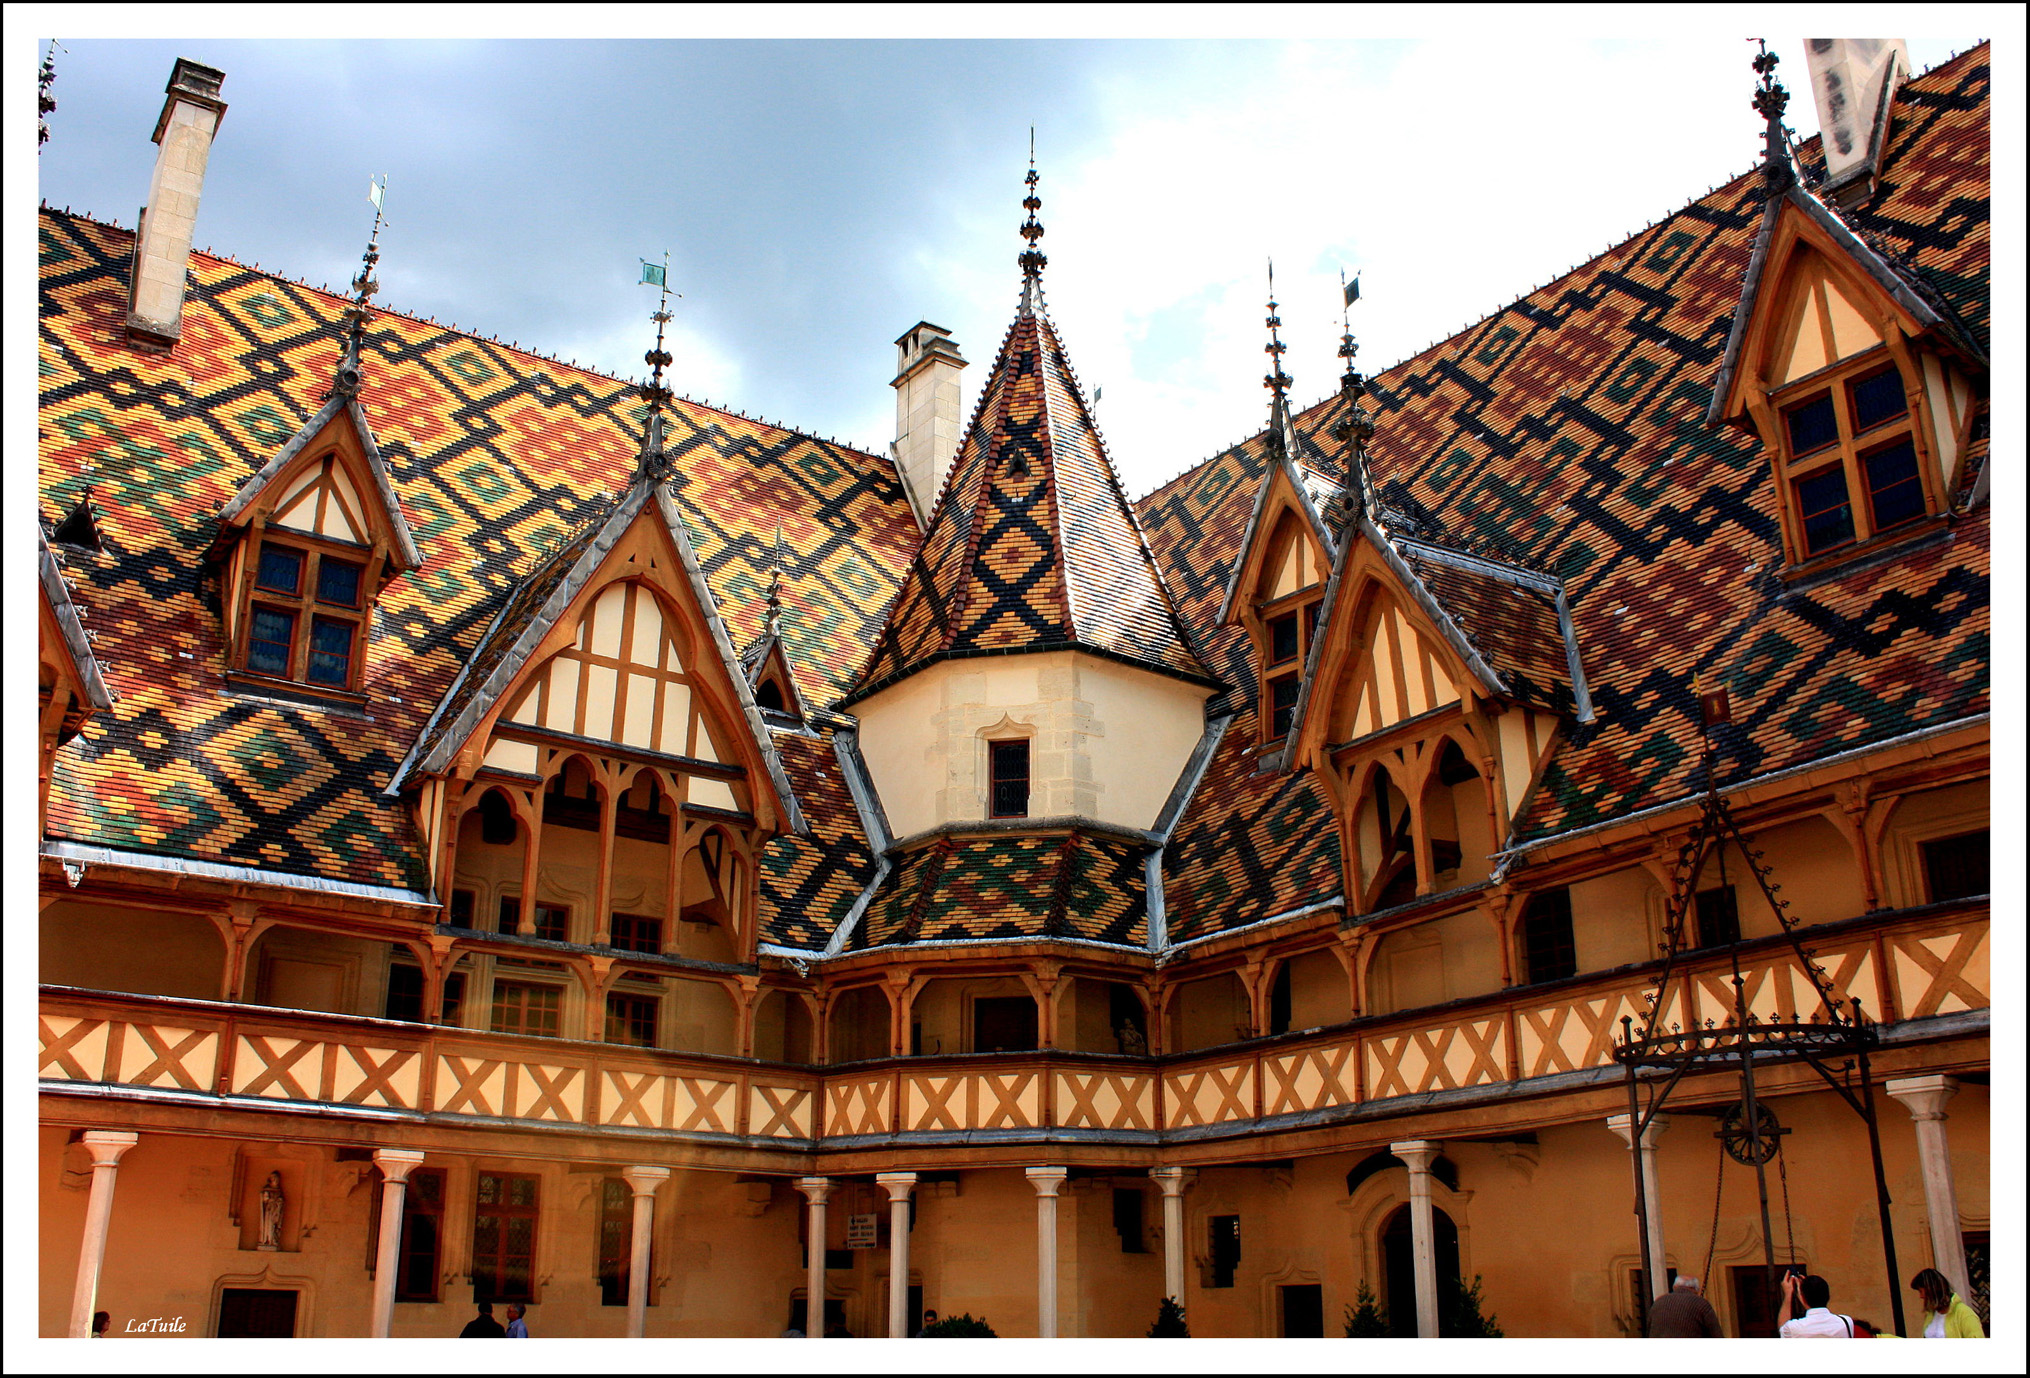 beaune chatrooms Looking for a hotel in beaune a leisure break or a business trip let laterooms help you make the most of your stay with upto 50% off book now.